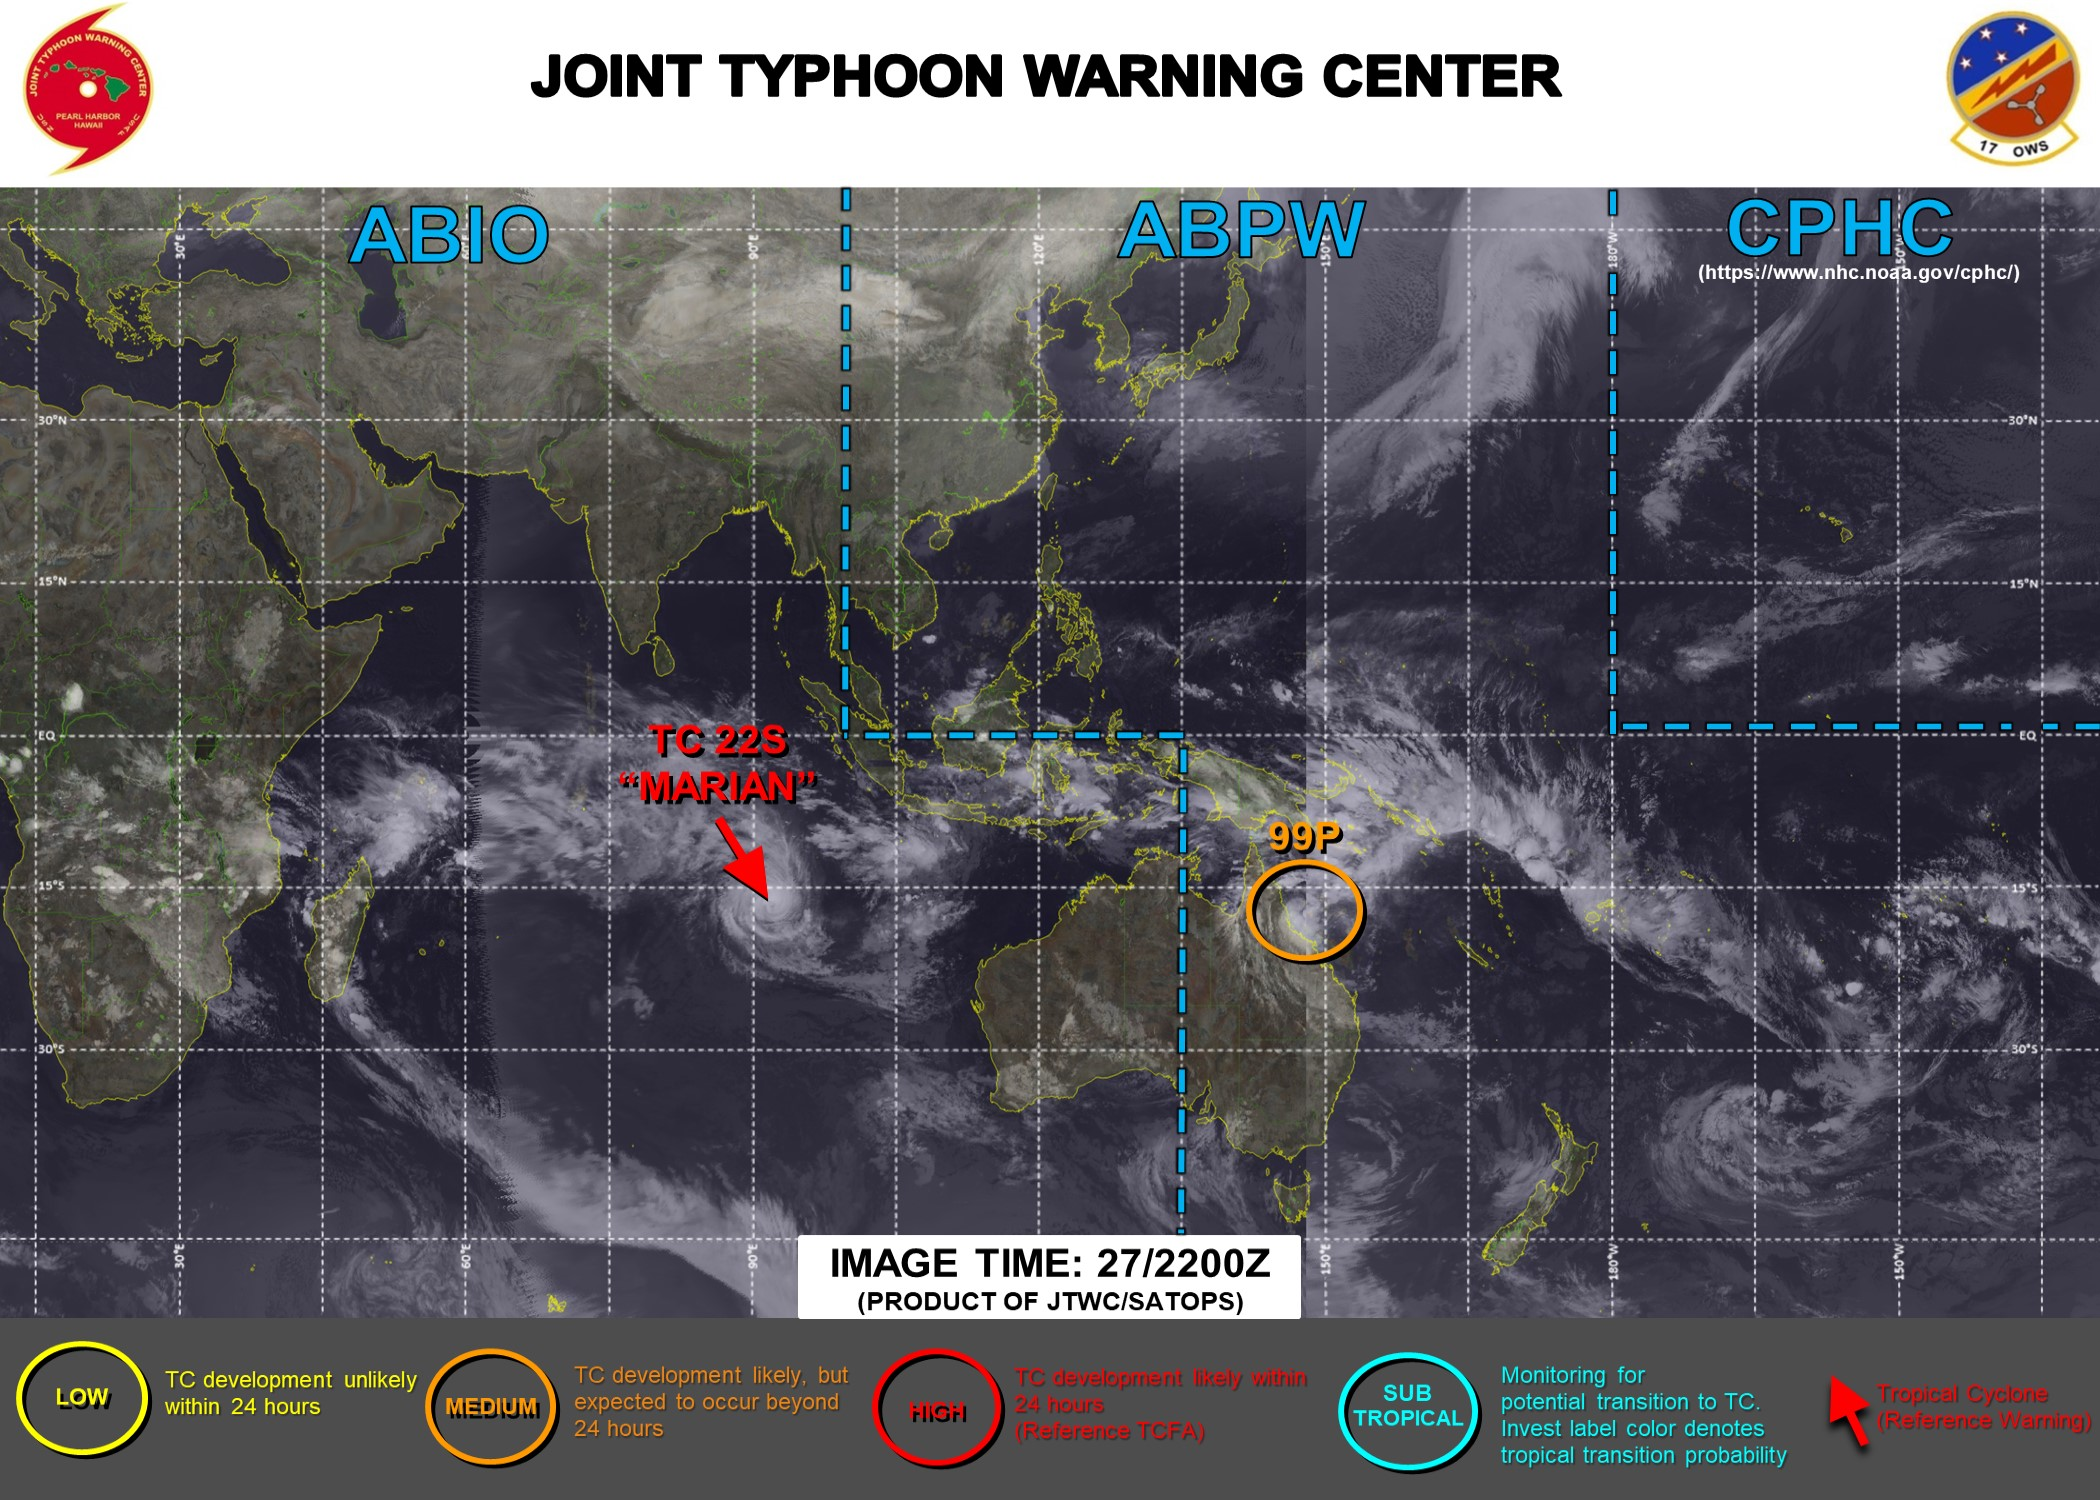 28/03UTC. JTWC HAS BEEN ISSUING 12HOURLY WARNINGS AND 3 HOURLY SATELLITE BULLETINS ON TC 22S(MARIAN). INVEST 99P IS UP-GRADED TO MEDIUM FOR THE NEXT 24HOURS.